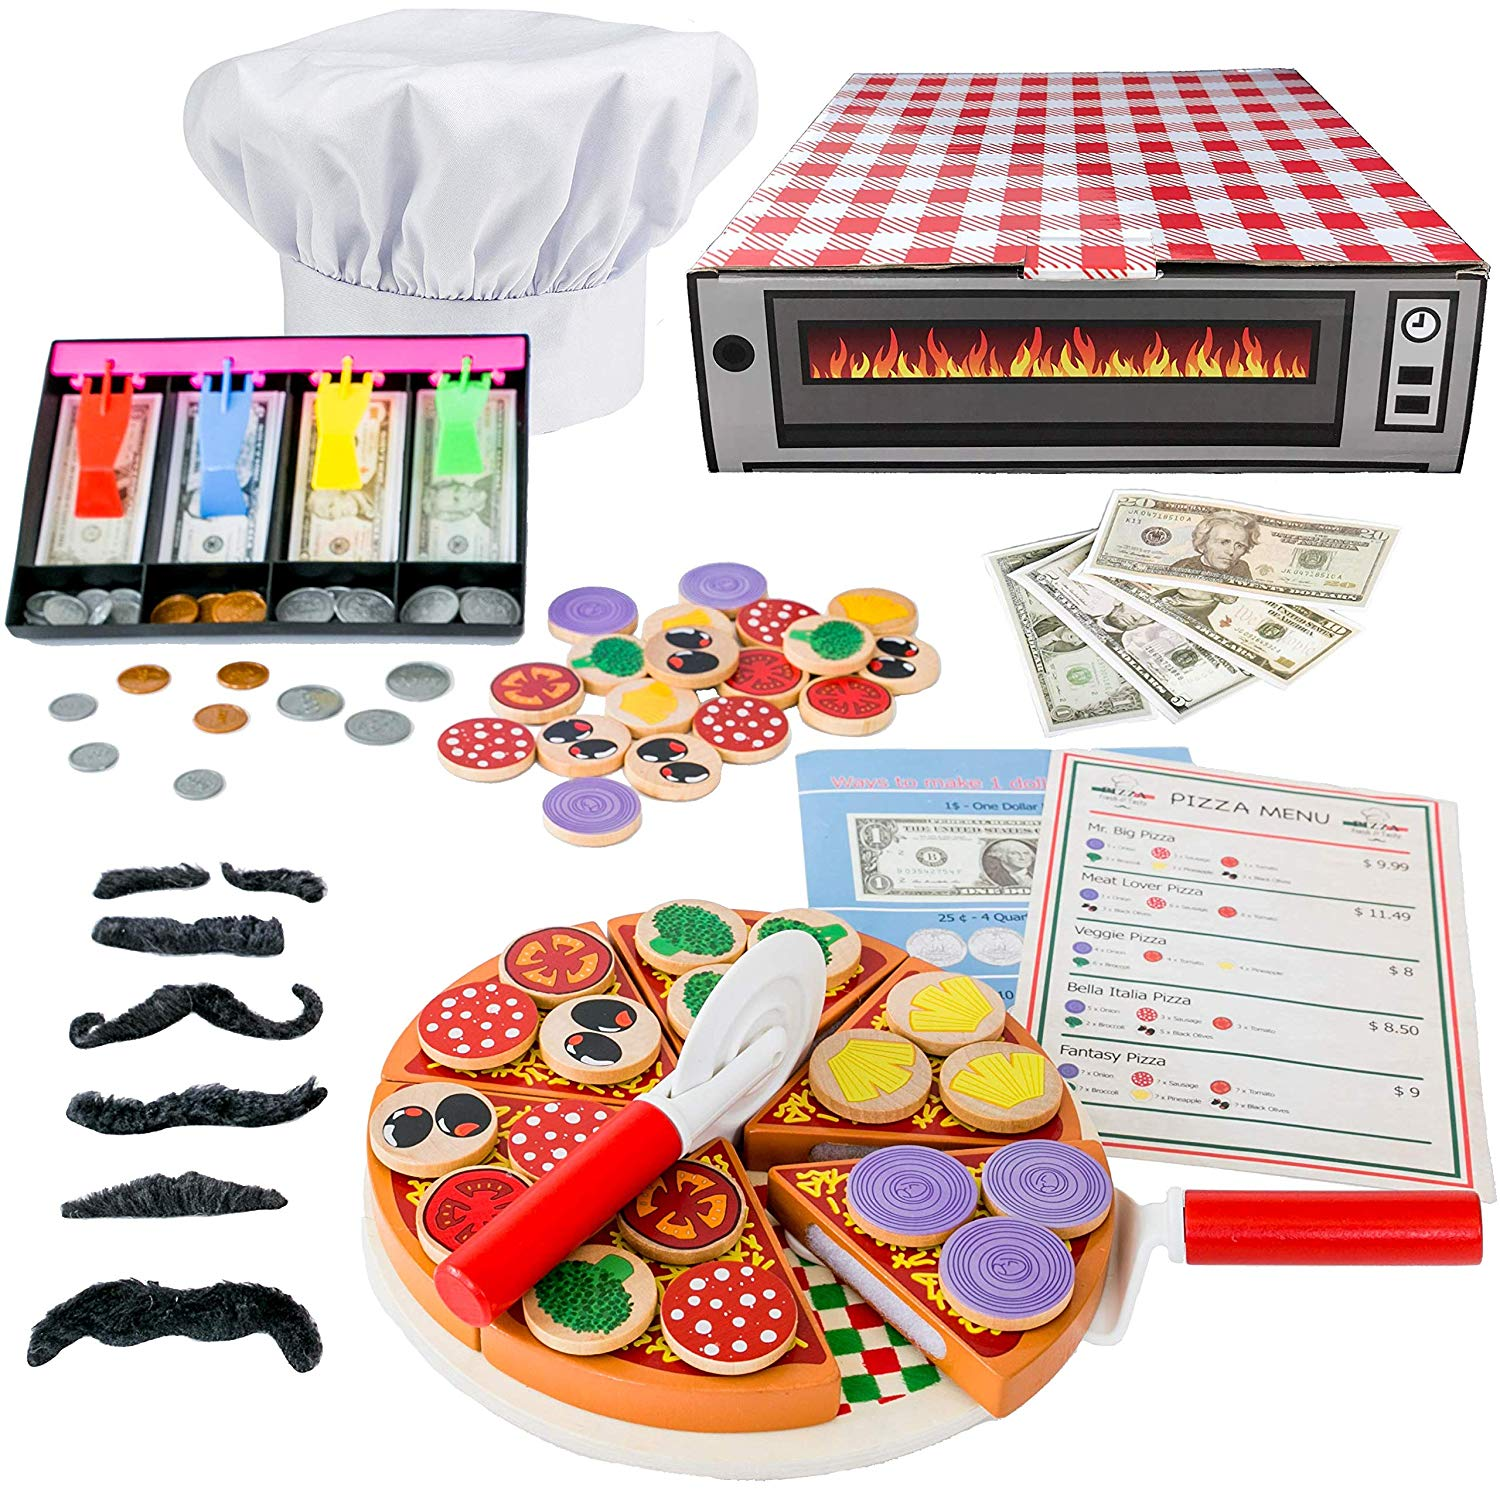 Jogo Jogo Pizza Play Food Set - Top & Bake Wooden Toys with Fake Money & Chef hat (121 pcs) -Most Complete Pizza Set Oven Toy & Sticky tab toppings - Pretend Play Kitchen Chef, Teach & Learn Money